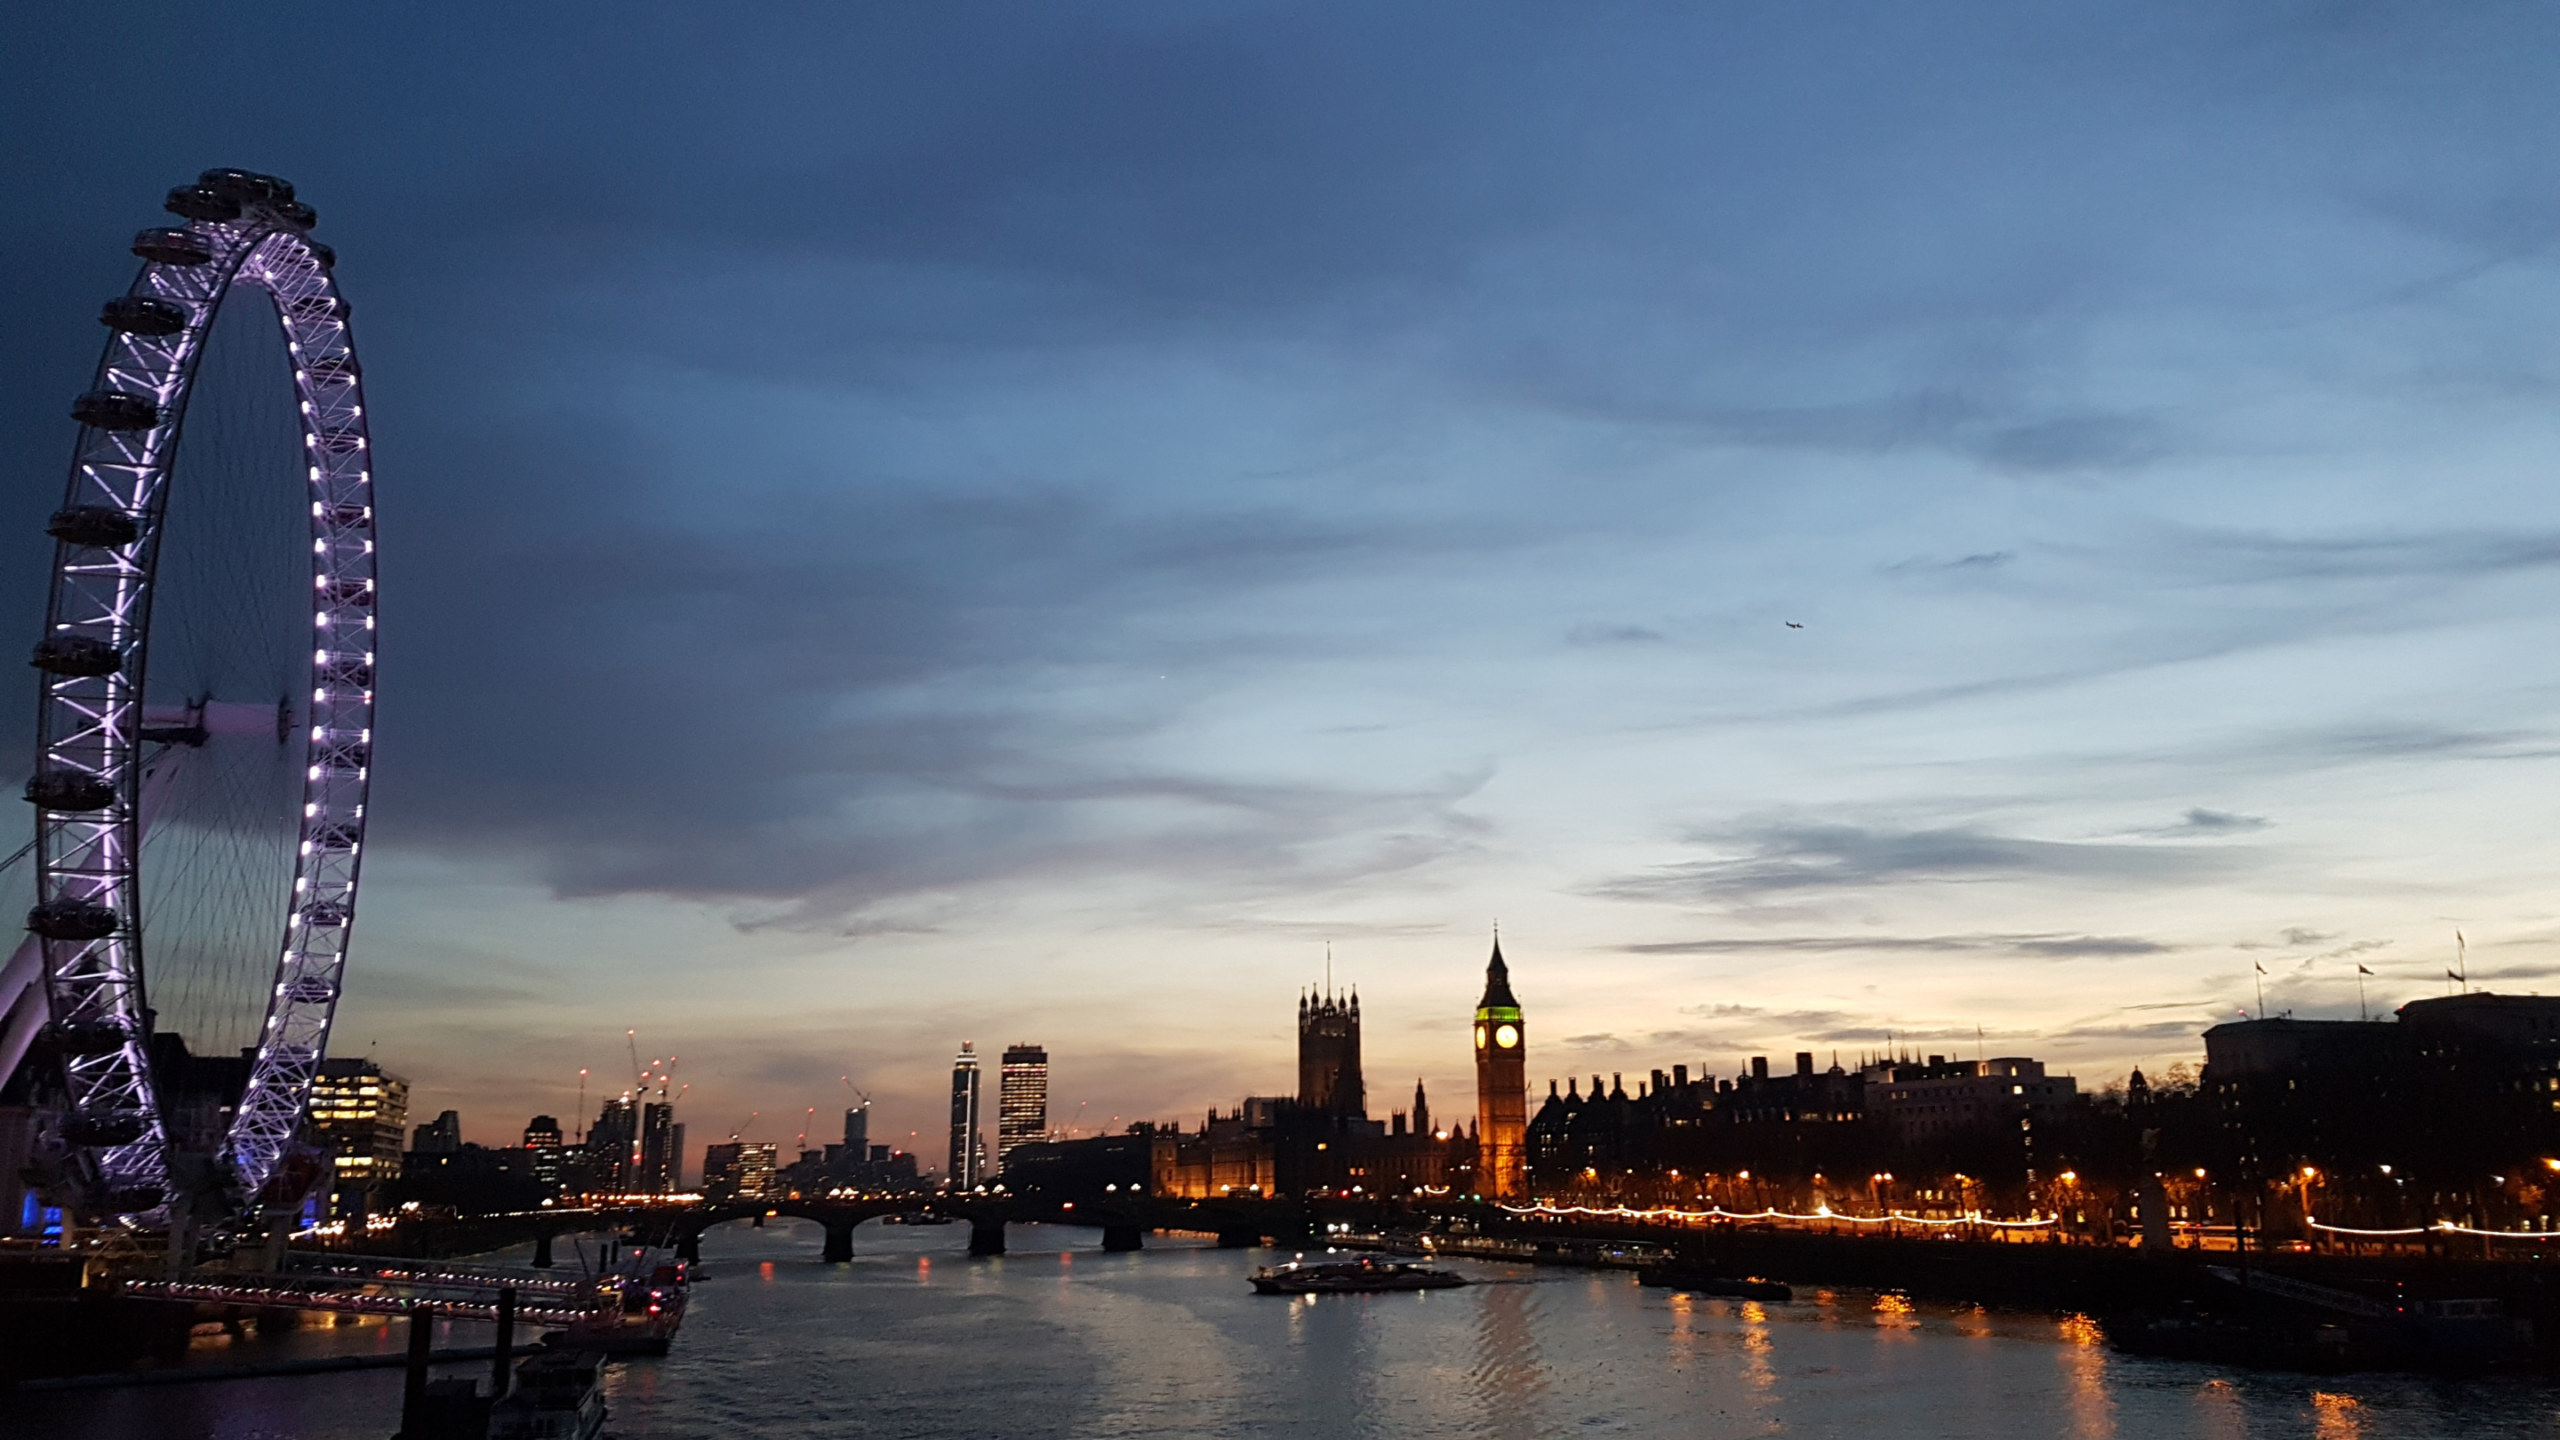 london-aspect-ratio-2560-1440